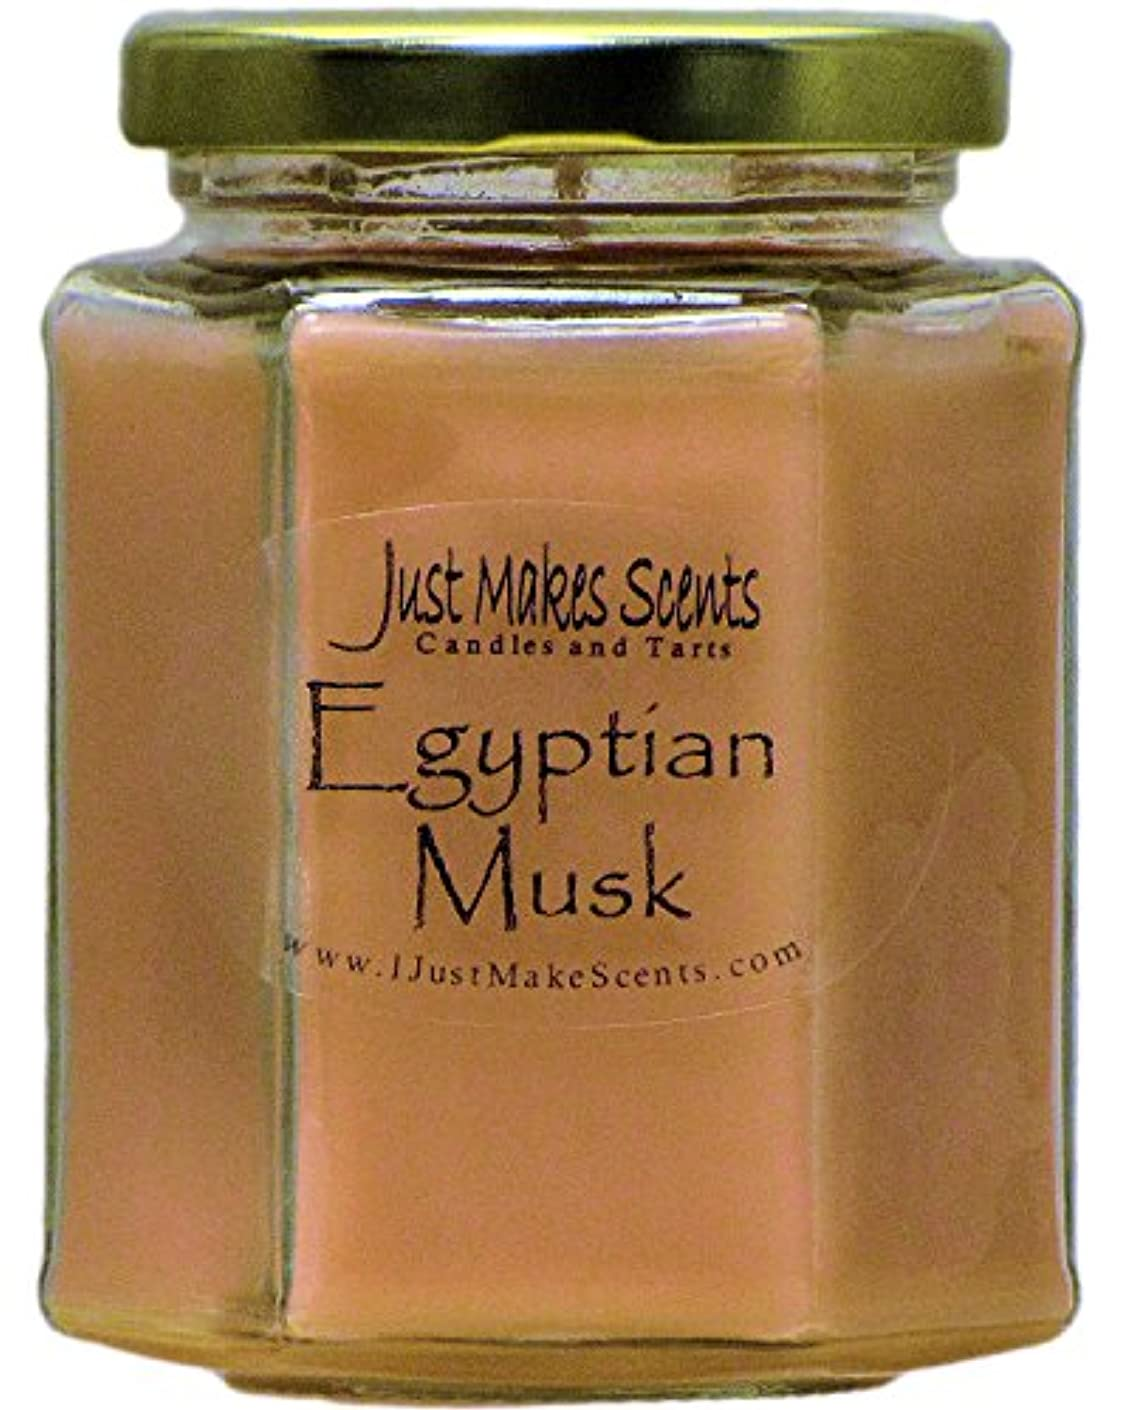 土器下にシェアEgyptian Musk Scented Blended大豆キャンドルby Just Makes Scents8オンス。。。 1 Candle C03809HCNL